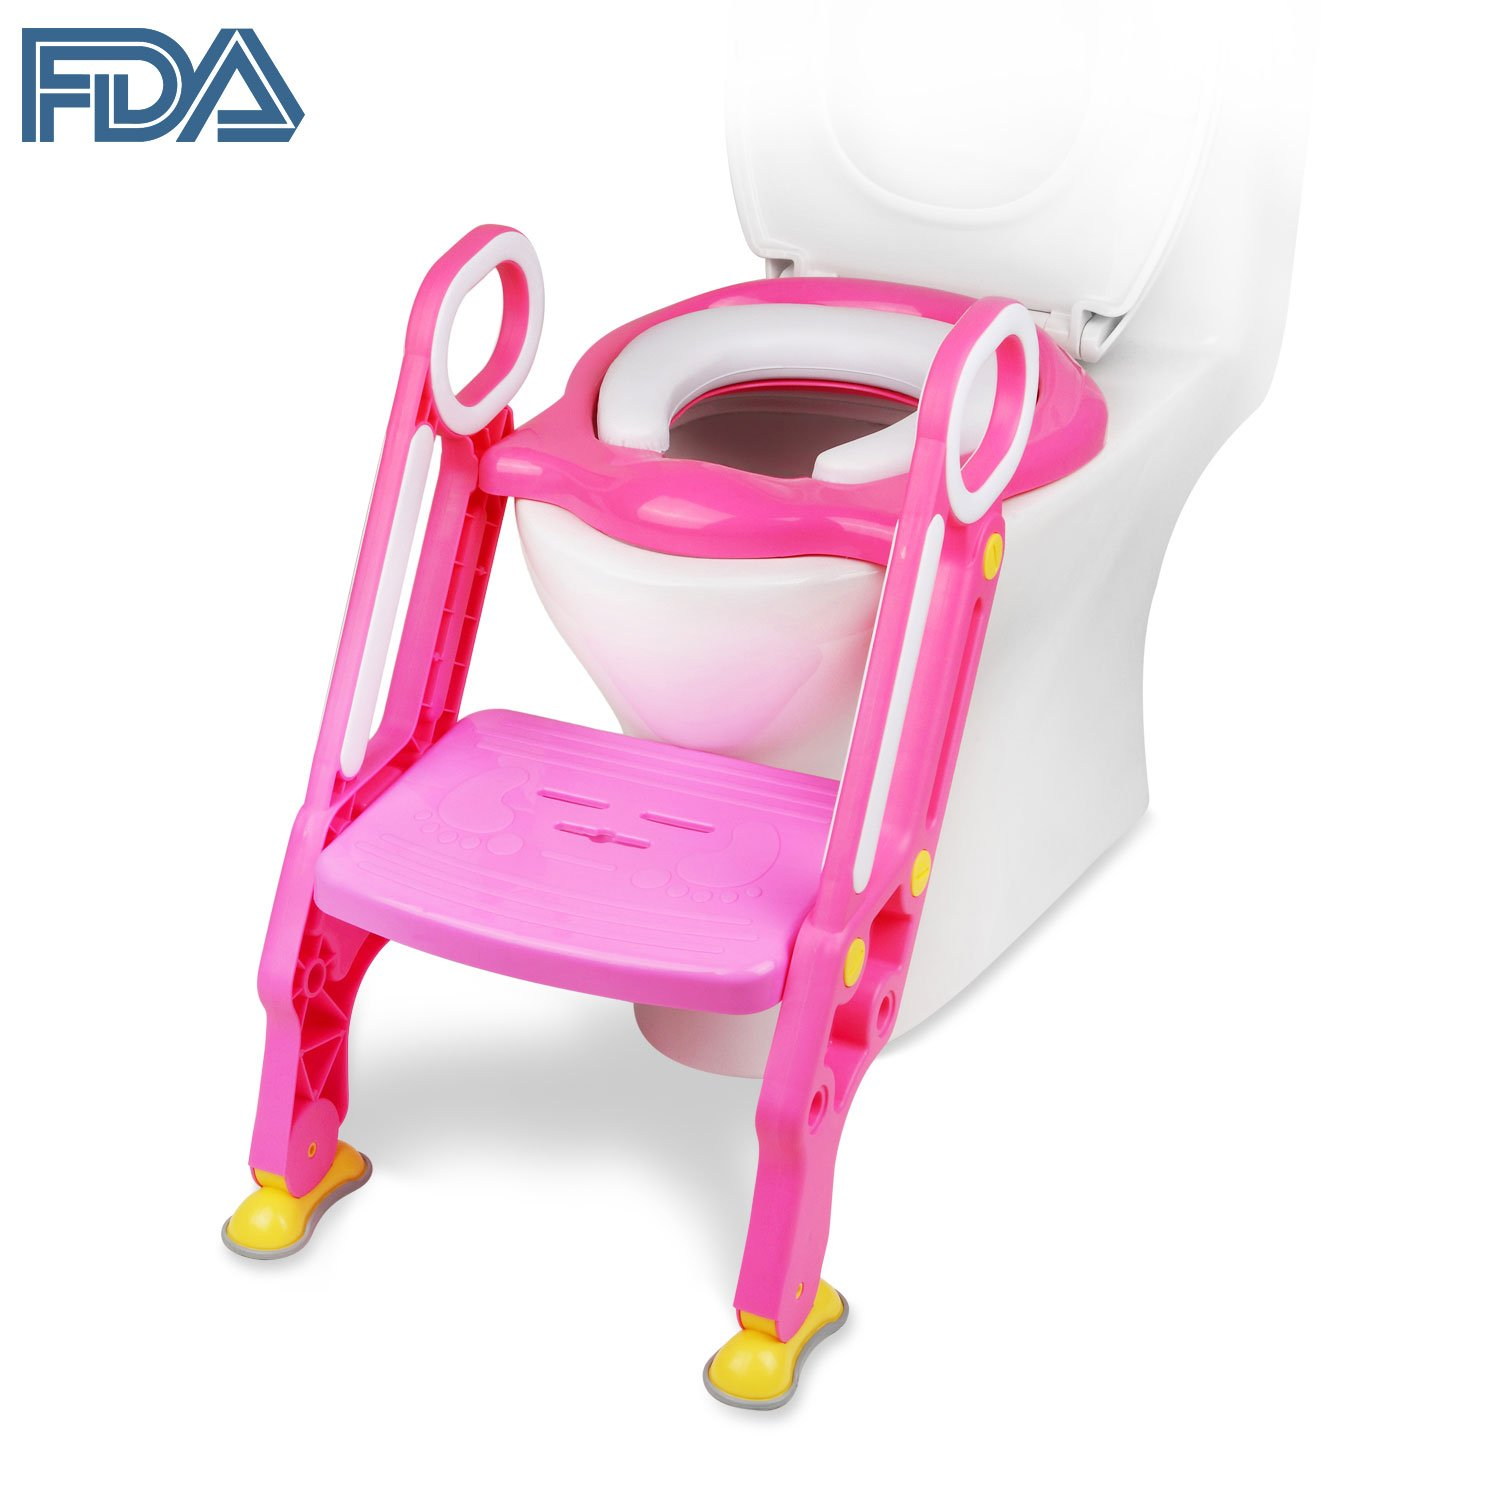 [FDA Certified] Ostrich Toilet Step Trainer Ladder for Kid and Baby, Children's Toilet Seat Chair, Toddlers Toilet Training Step Stool for Girl and Boy (Pink) SYNCHKG120734